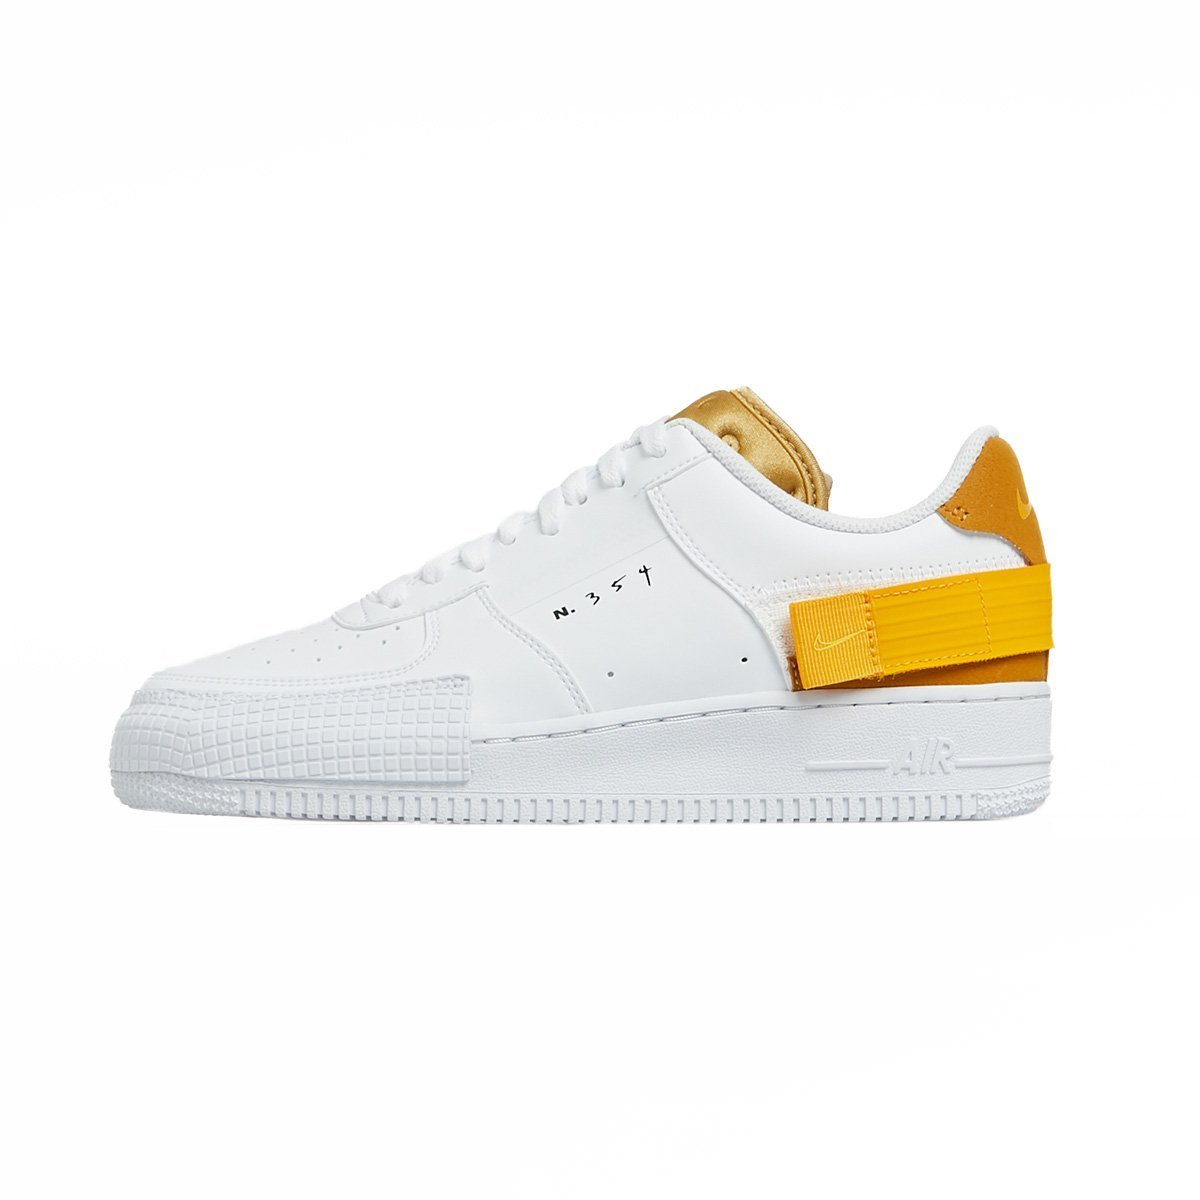 Sneakers Nike Air Force 1 Type whiteuniversity gold (AT7859 100)